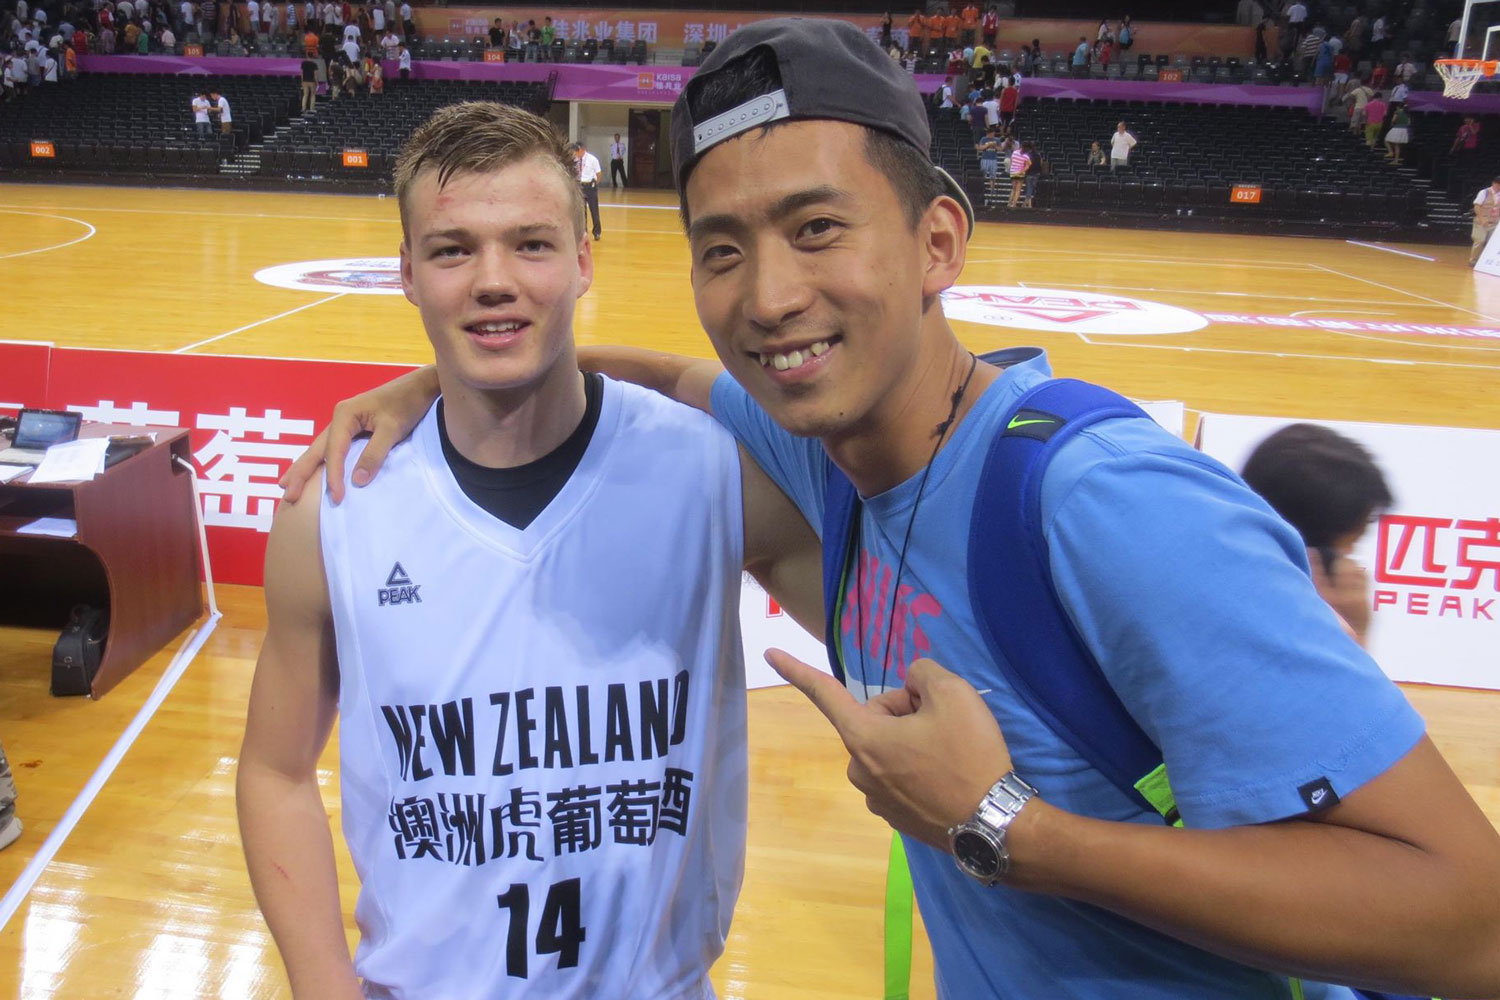 If you haven't figured it out, Sy is Salt's biggest fan. He also traveled to see him play at the 2015 Charleston Classic. He is pictured here in 2013 with Salt at an international basketball invitational in Shenzhen, China.